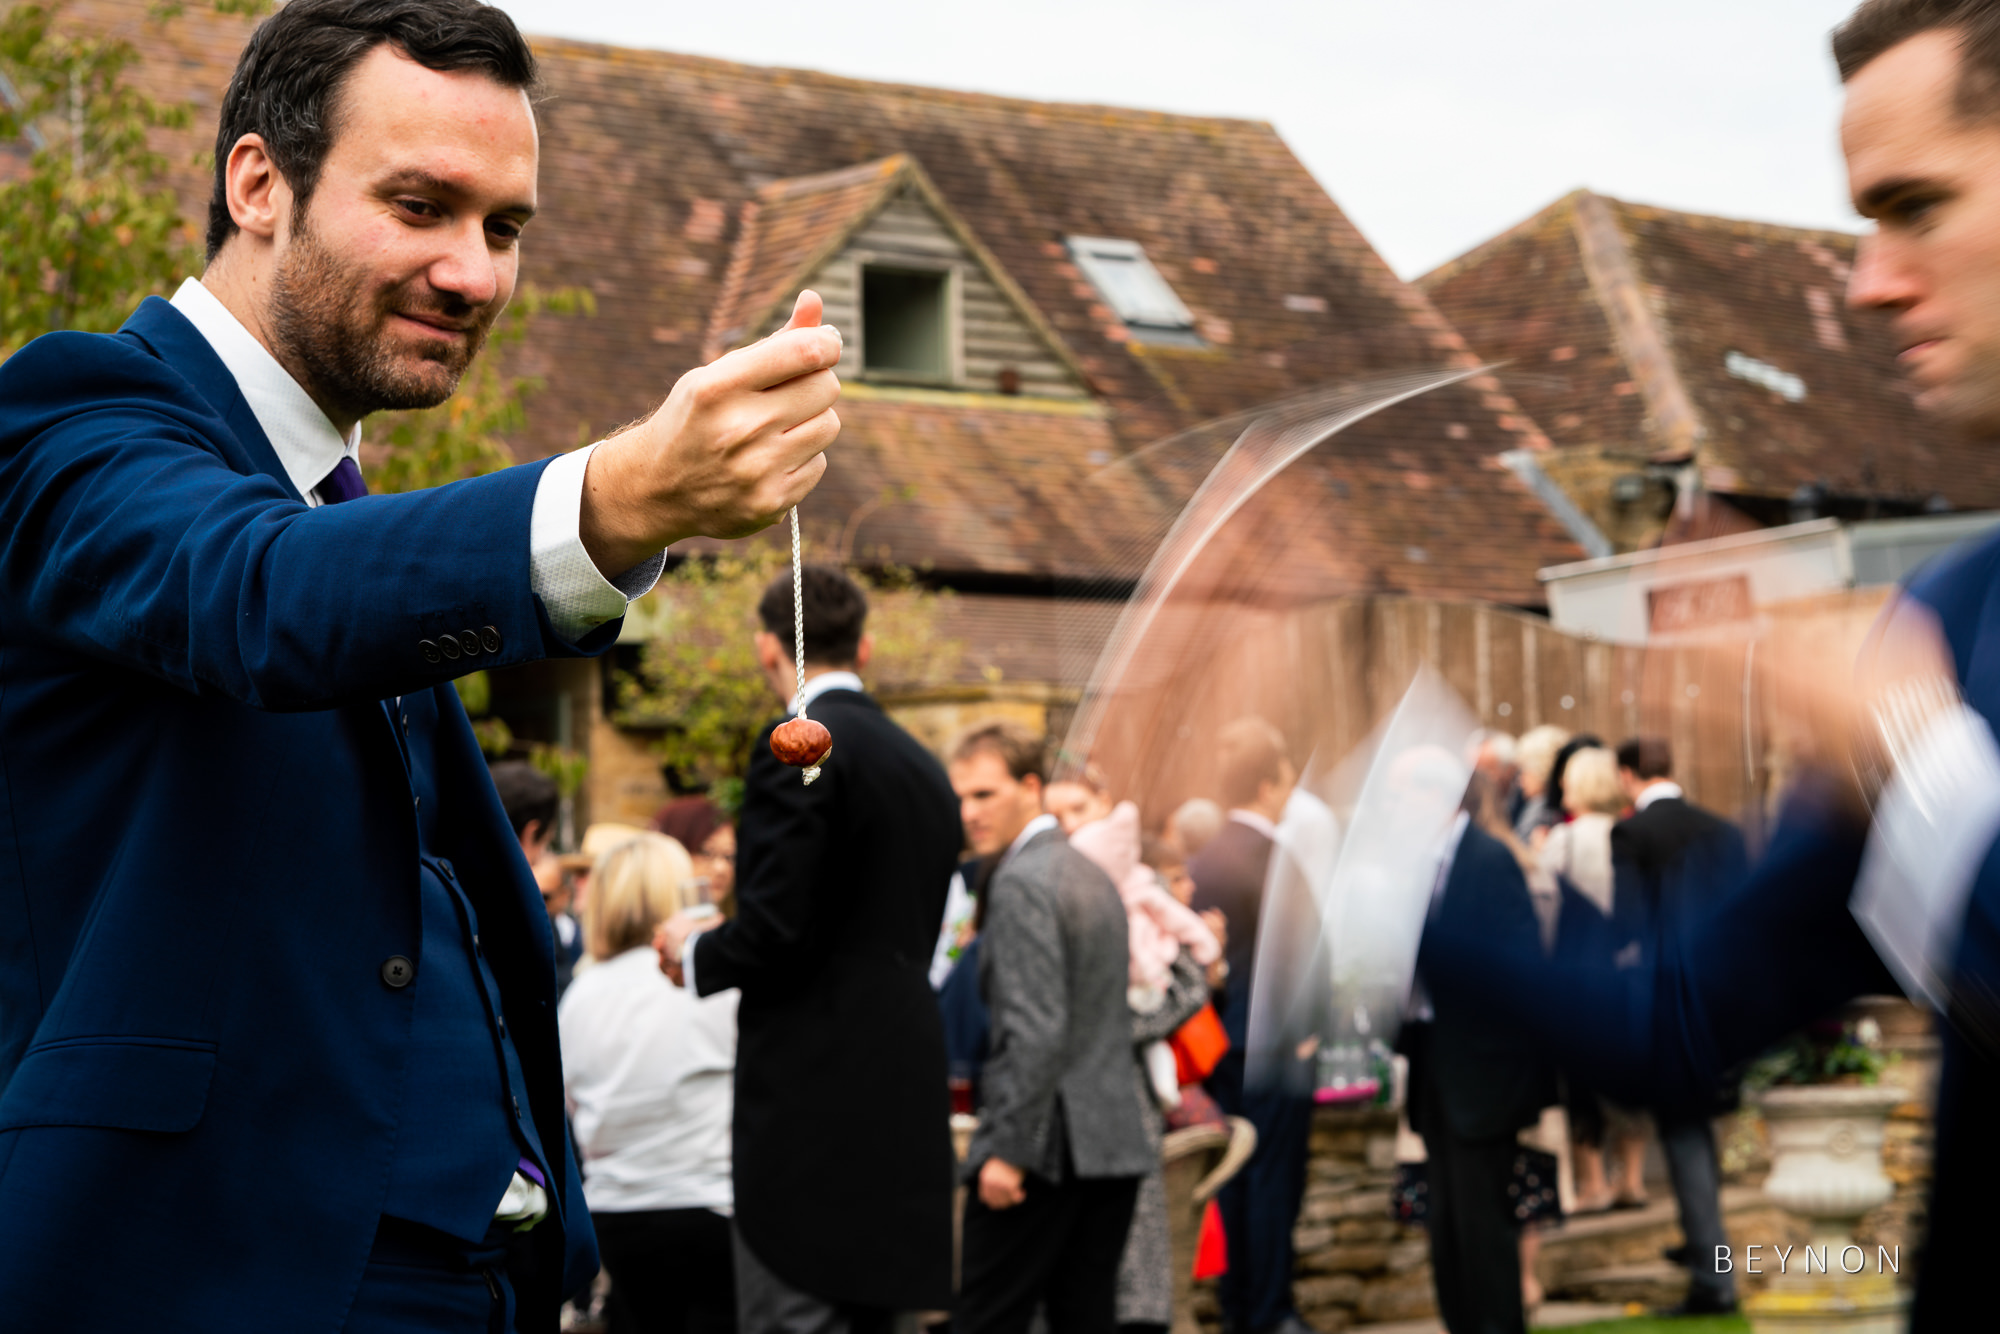 Wedding guests play conkers